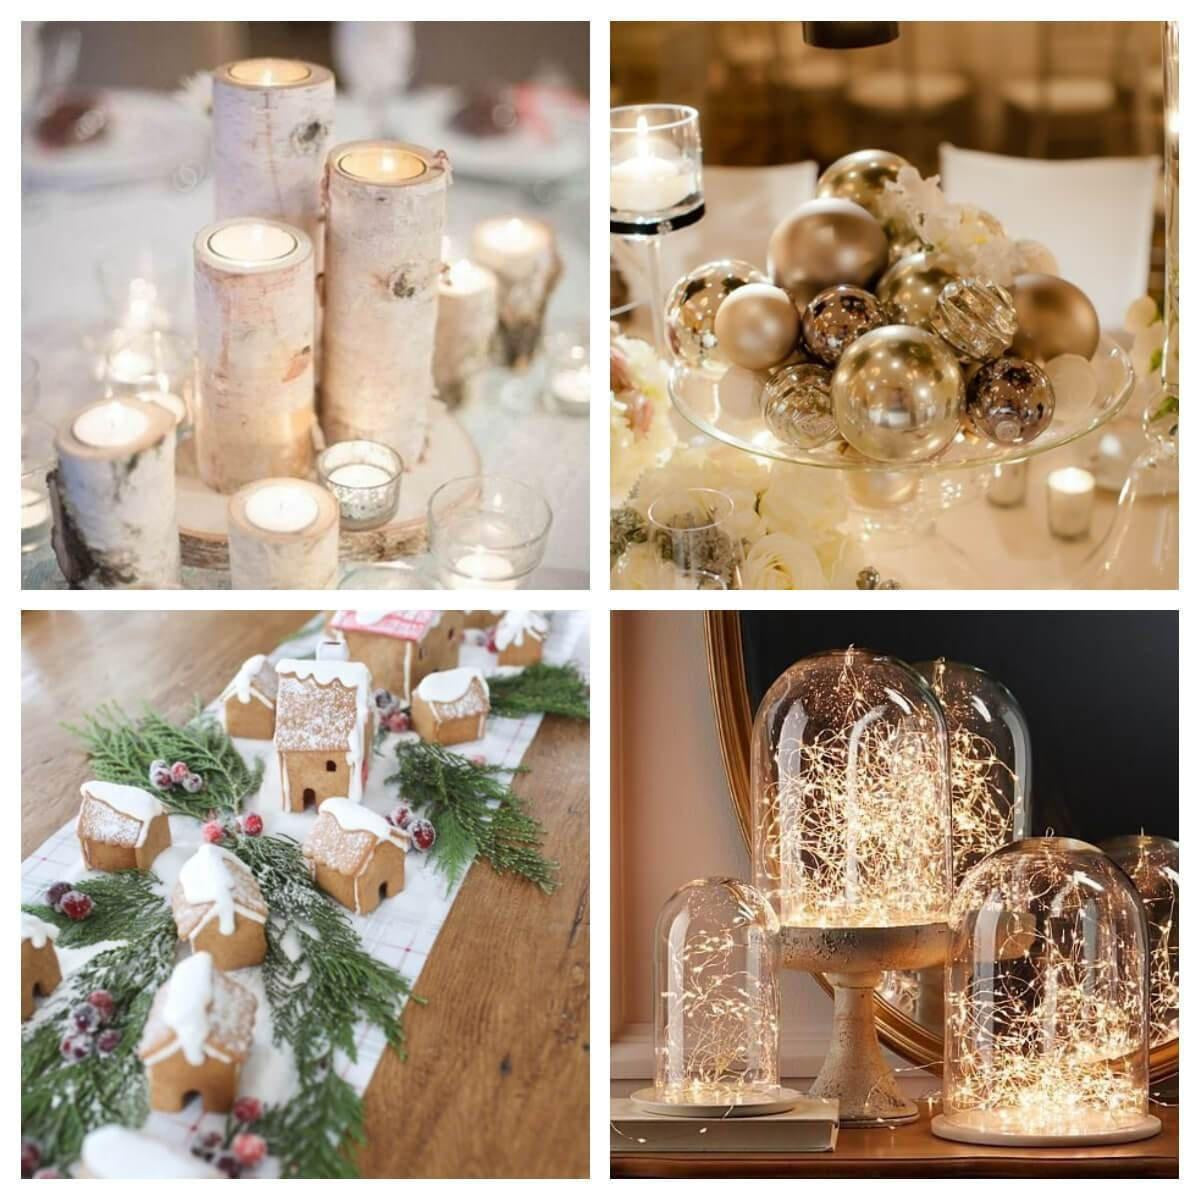 10 Winter Wedding Centerpieces Without Flowers